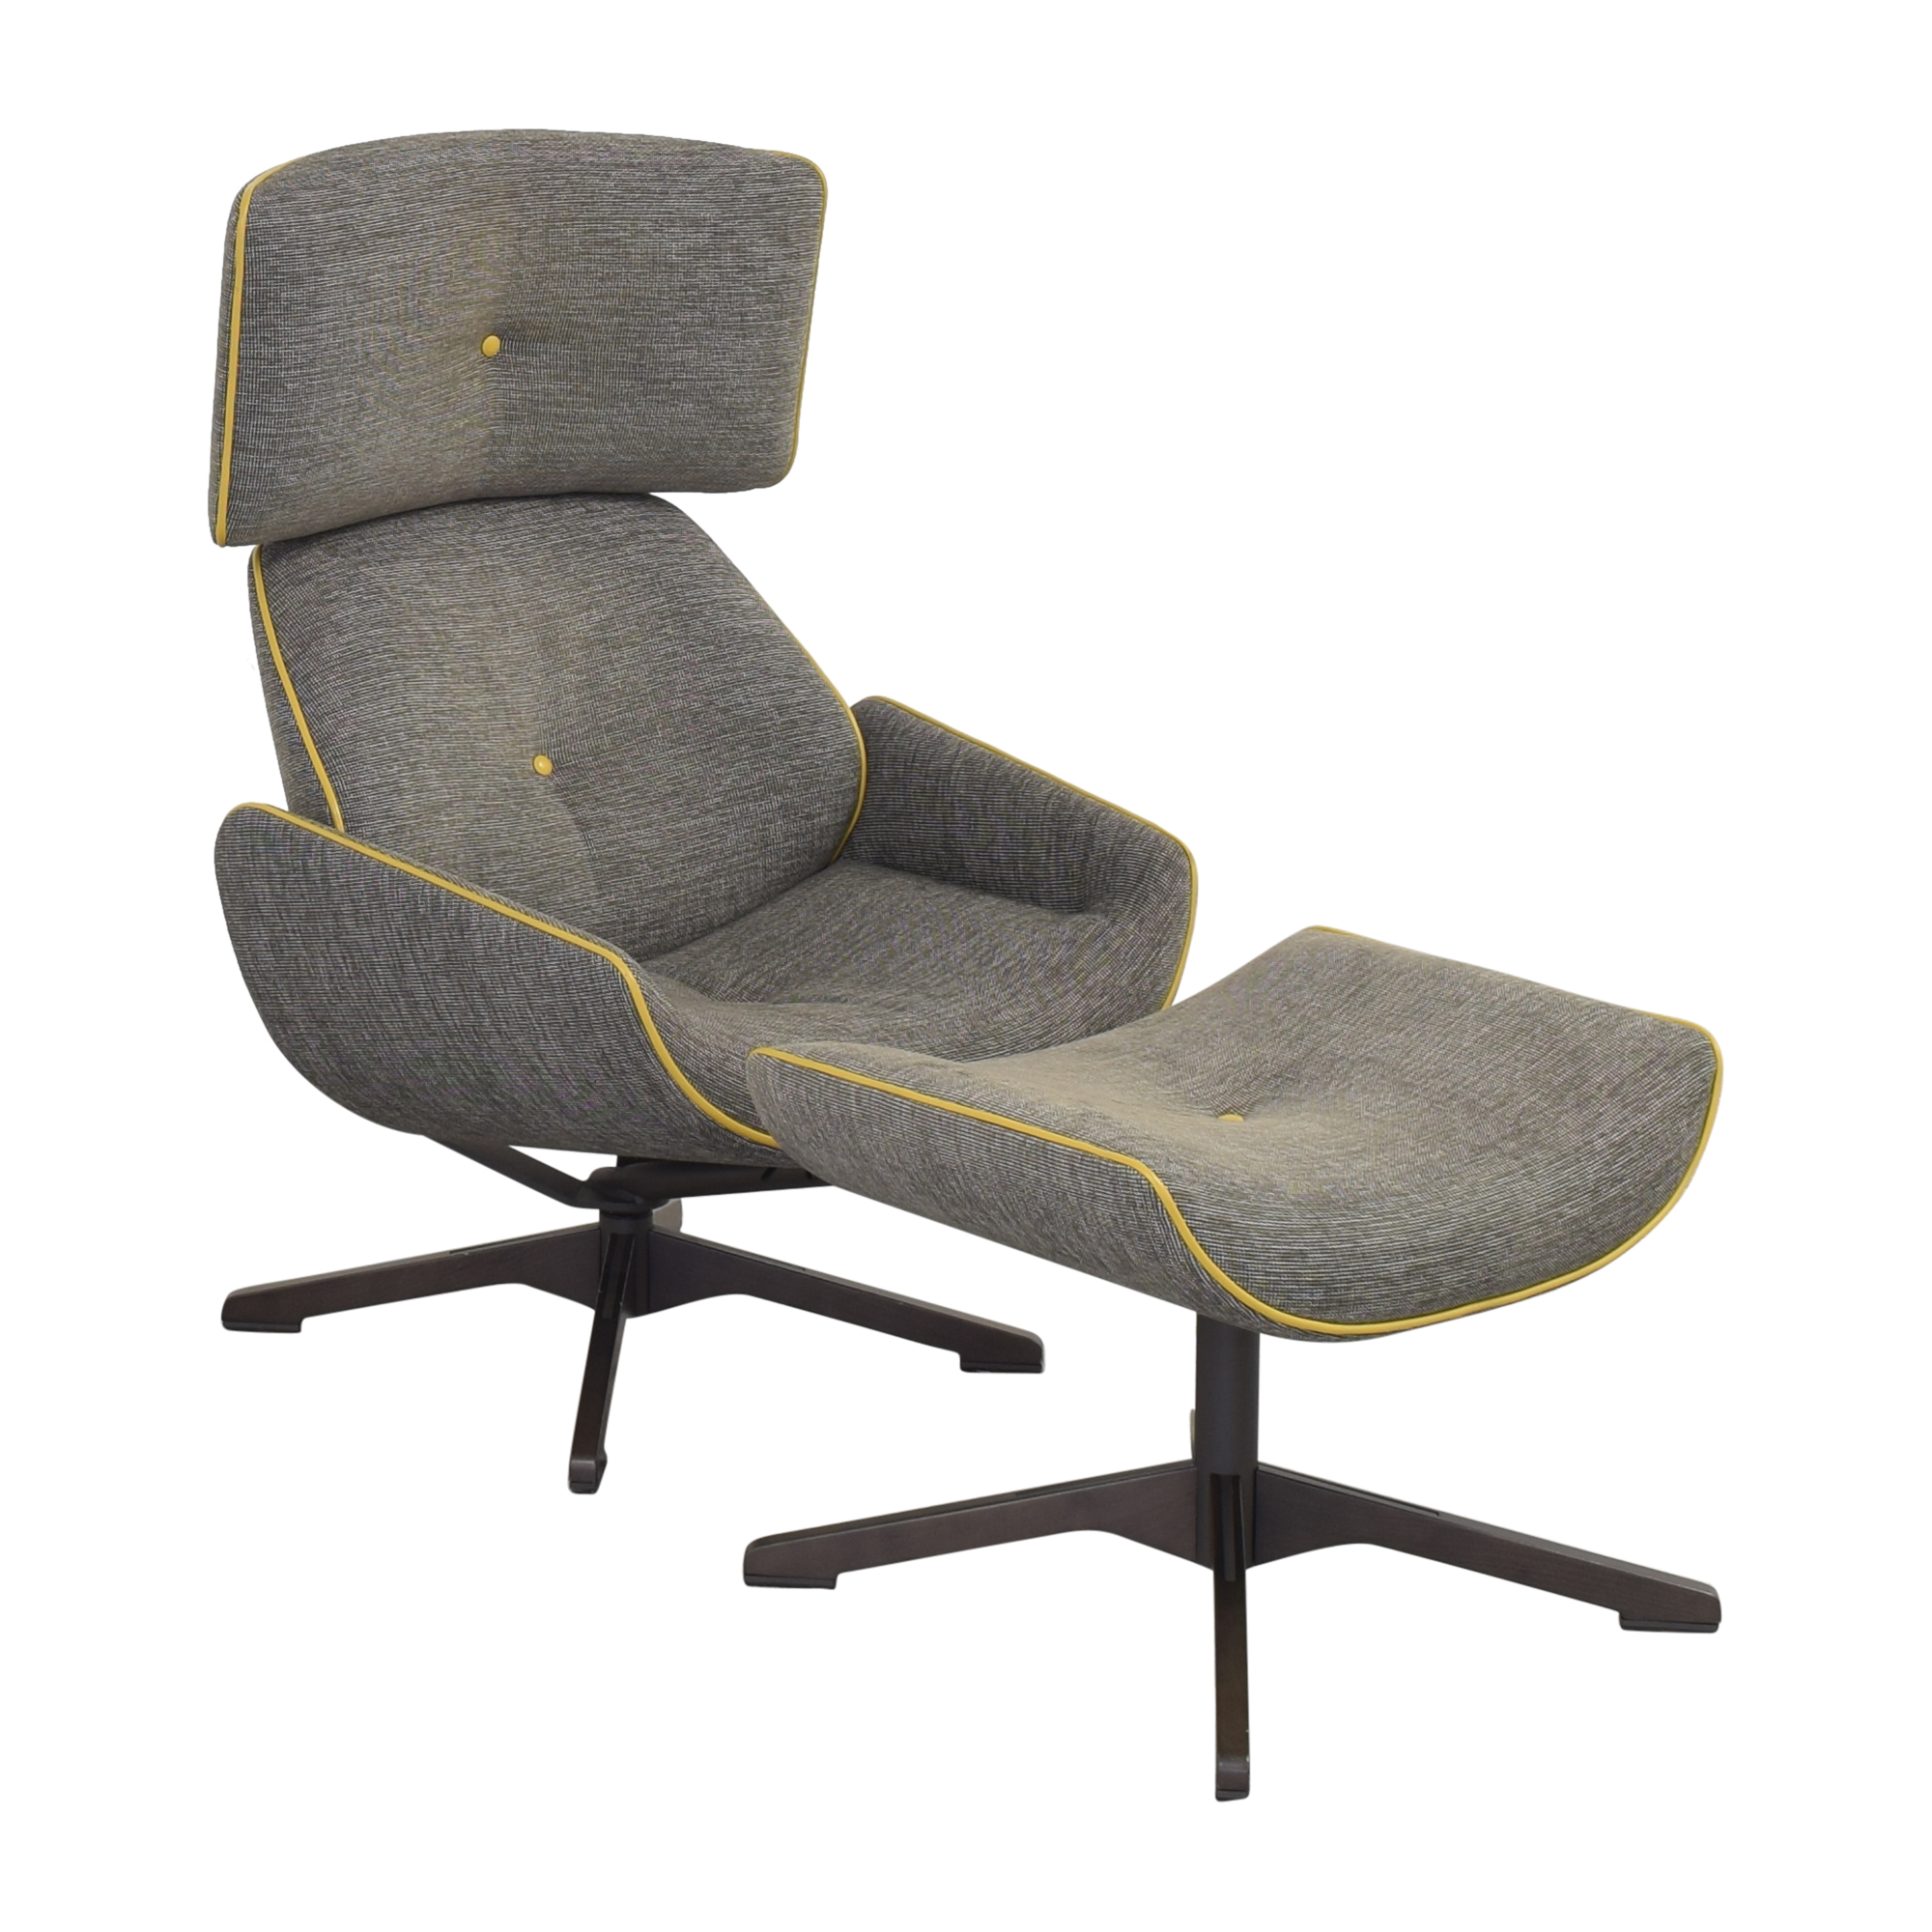 shop Roche Bobois Quiet Life Armchair and Footstool Roche Bobois Chairs